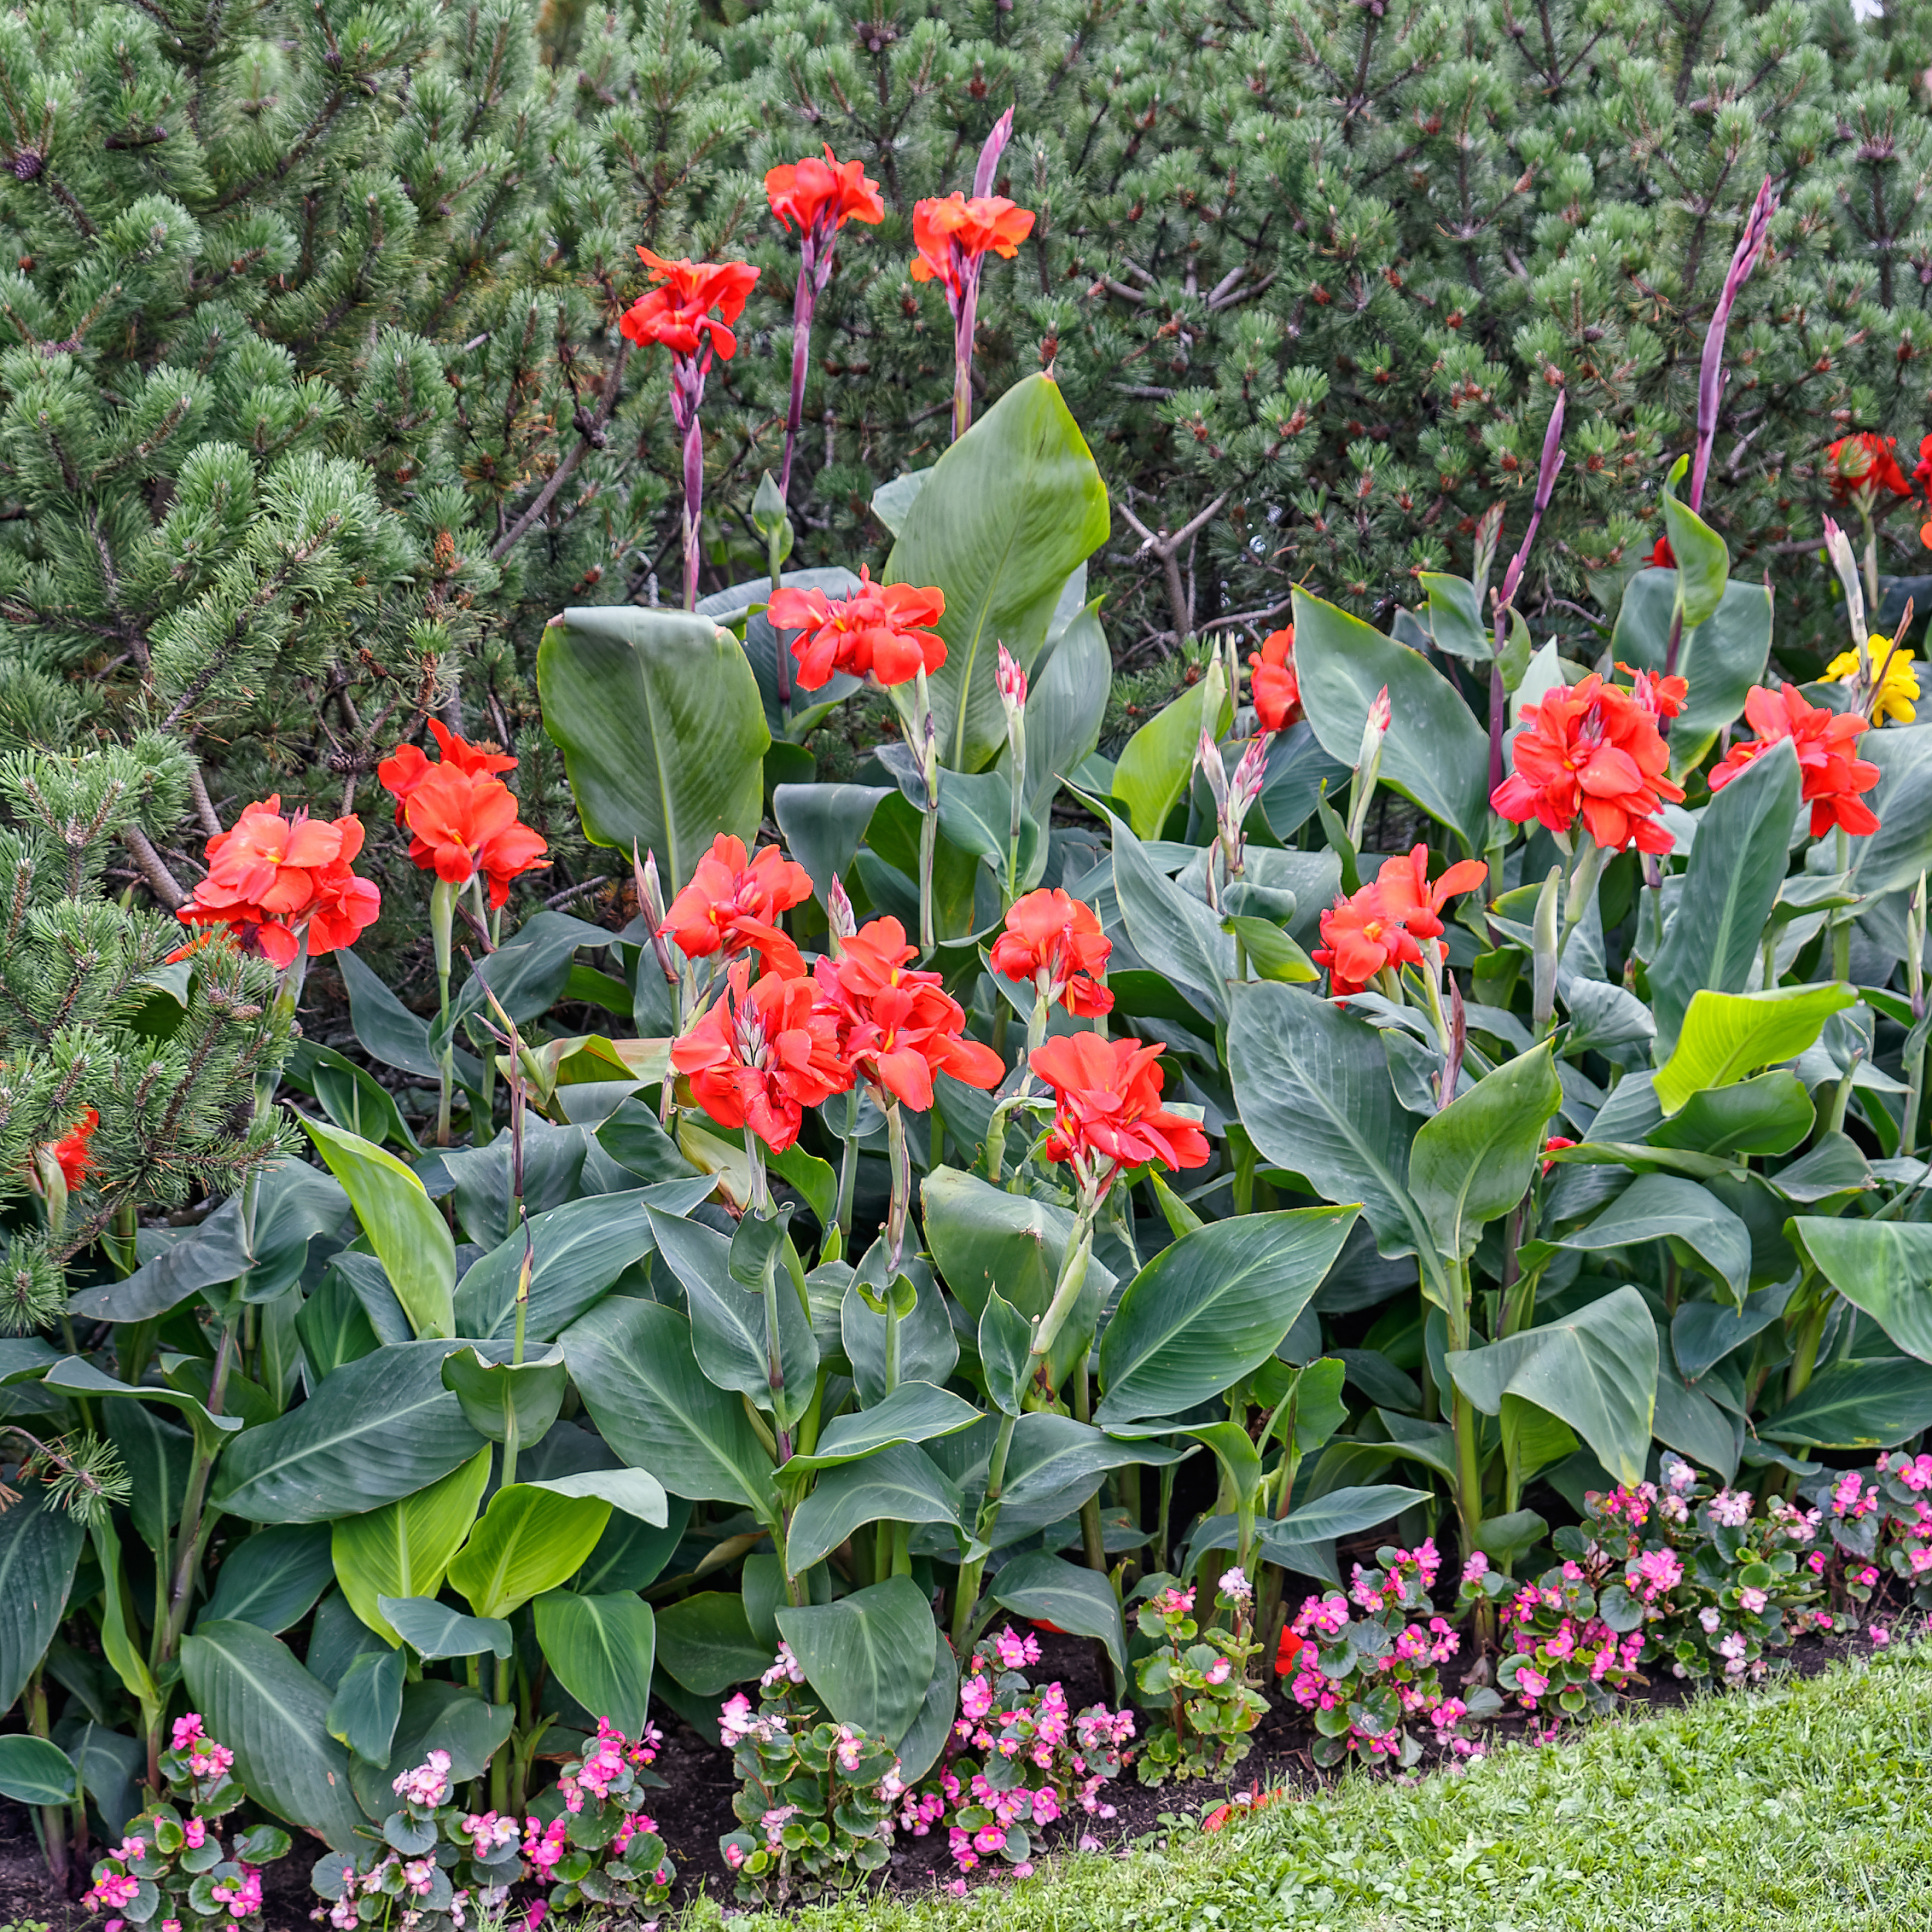 Red canna lillies